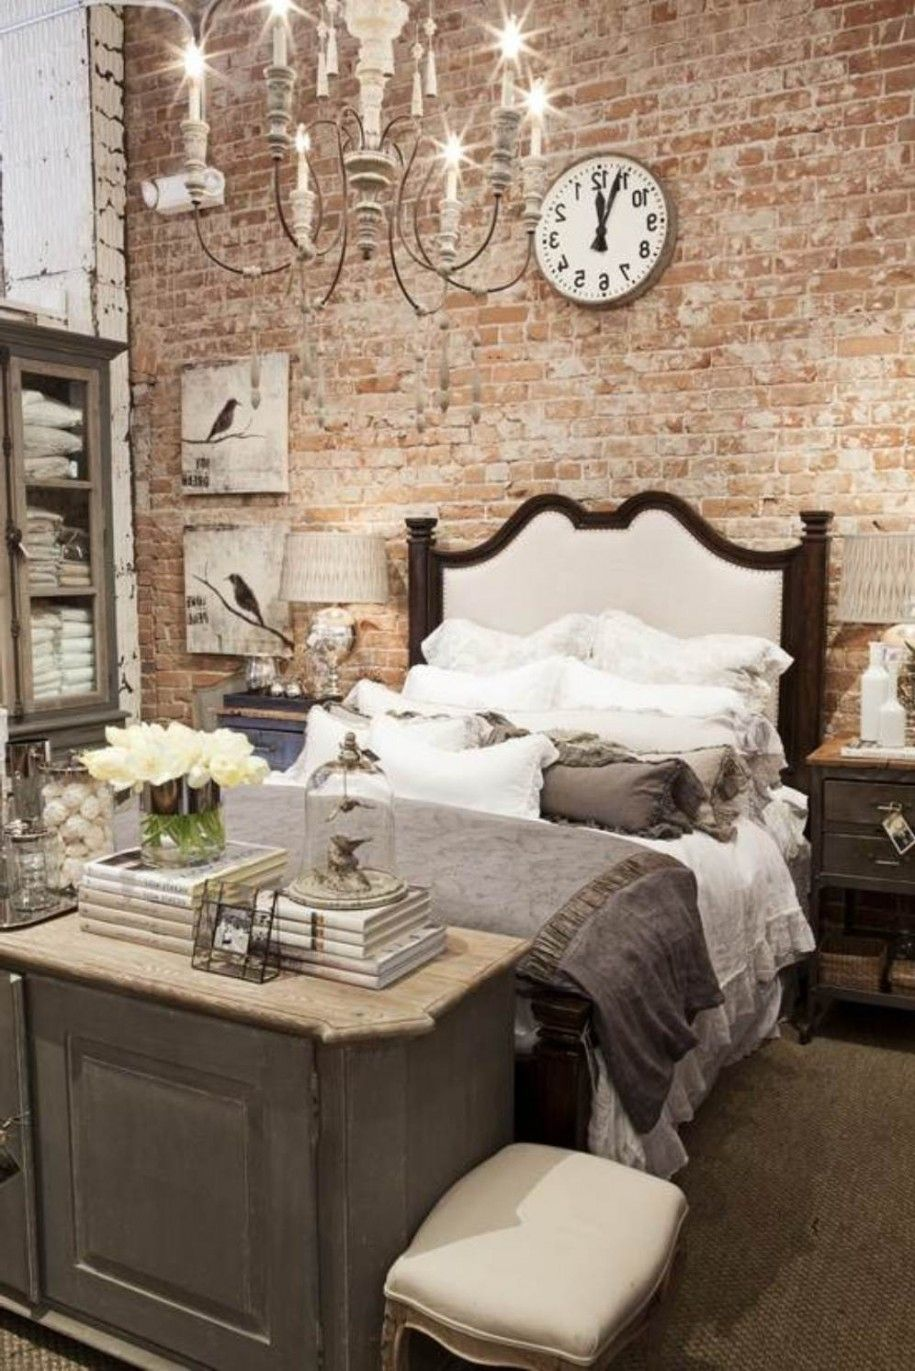 Romantic bedroom decorating ideas pinterest - Romantic Bedroom Decorating Ideas Bedroom Rustic Design Romantic Bedroom Ideas Exposed Brick Wall